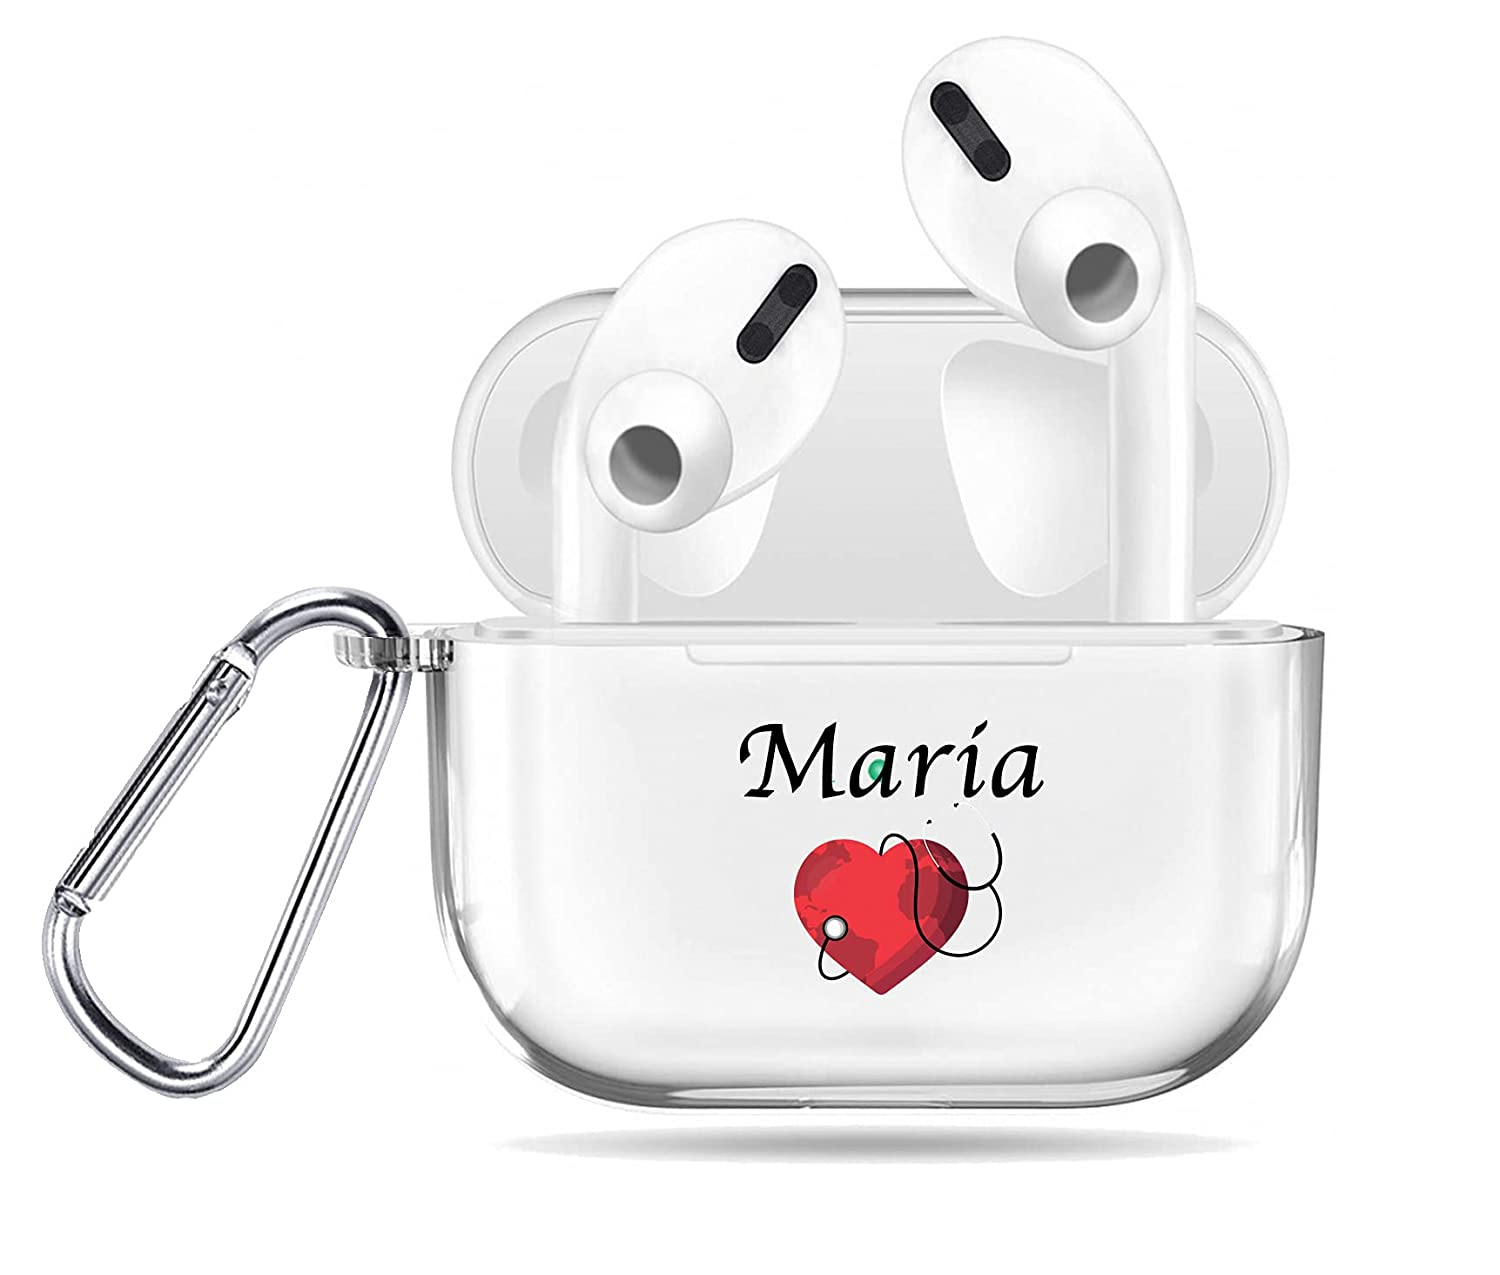 Doctor Airpods Pro Case Dedication Custom service Protect Heart Keychain Nurse Name